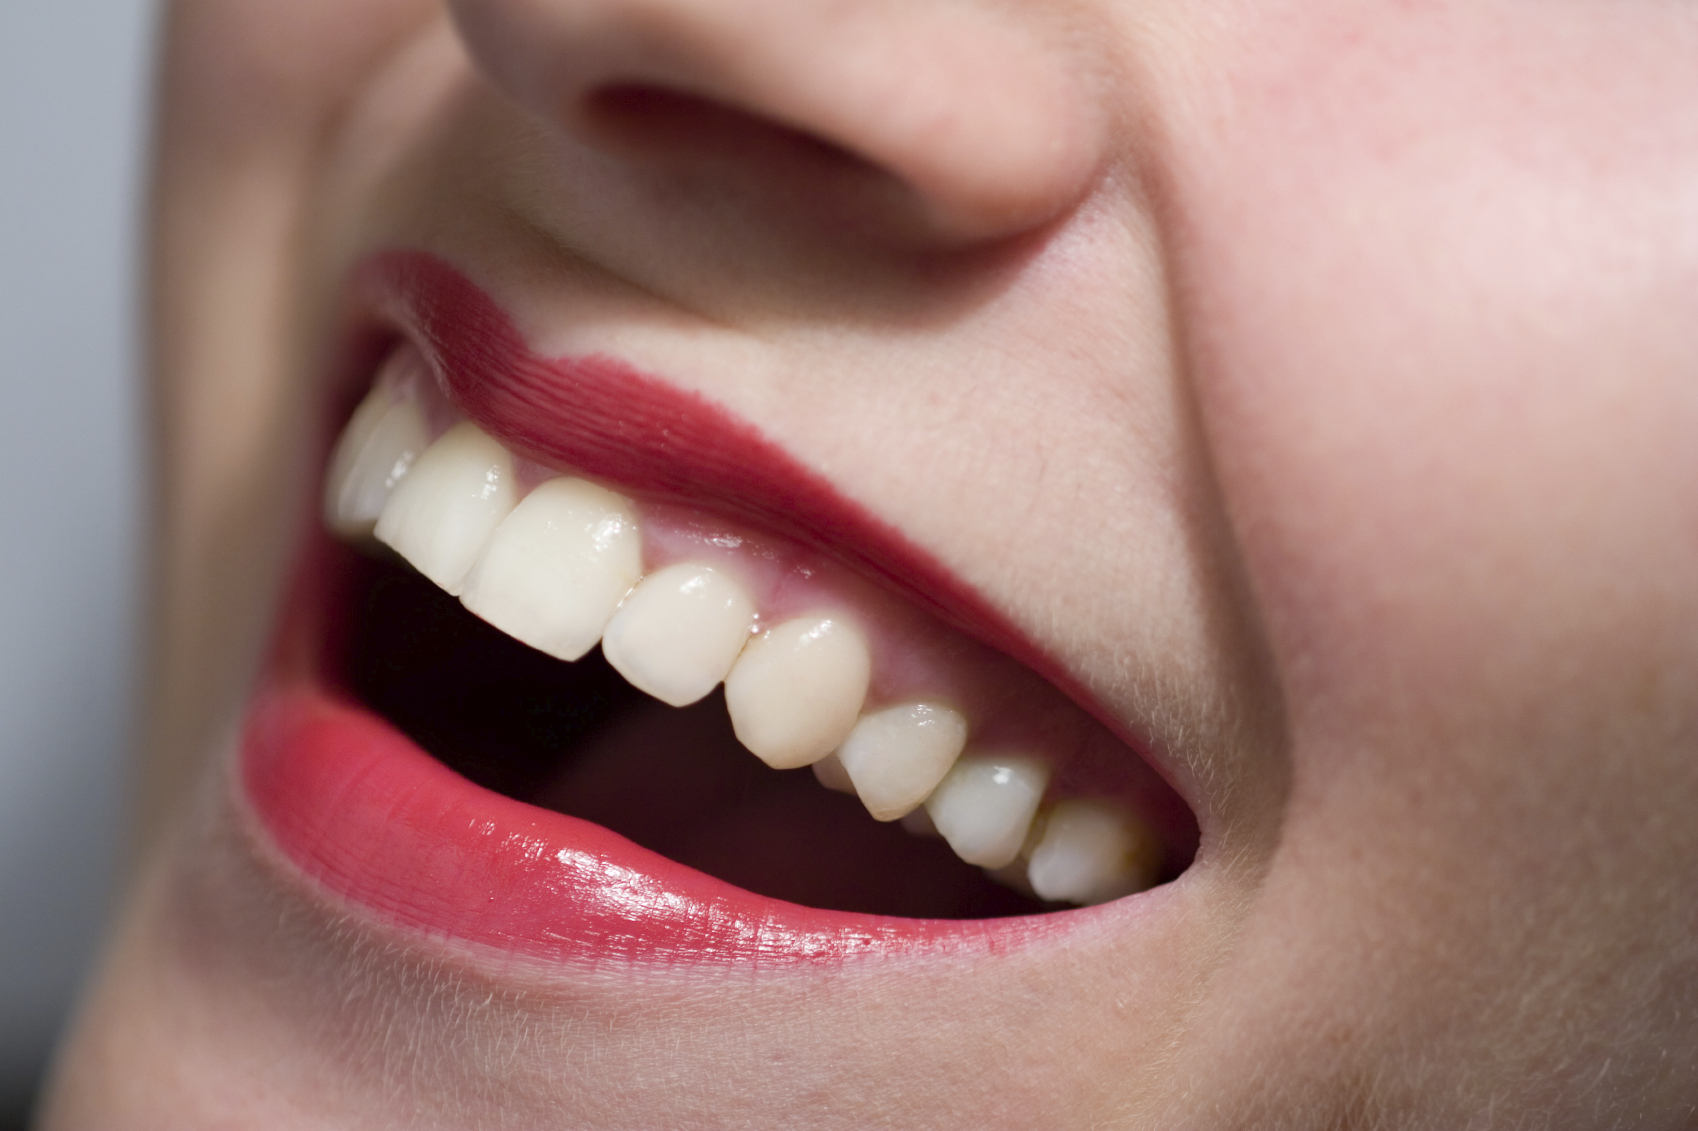 how to get better teeth without braces